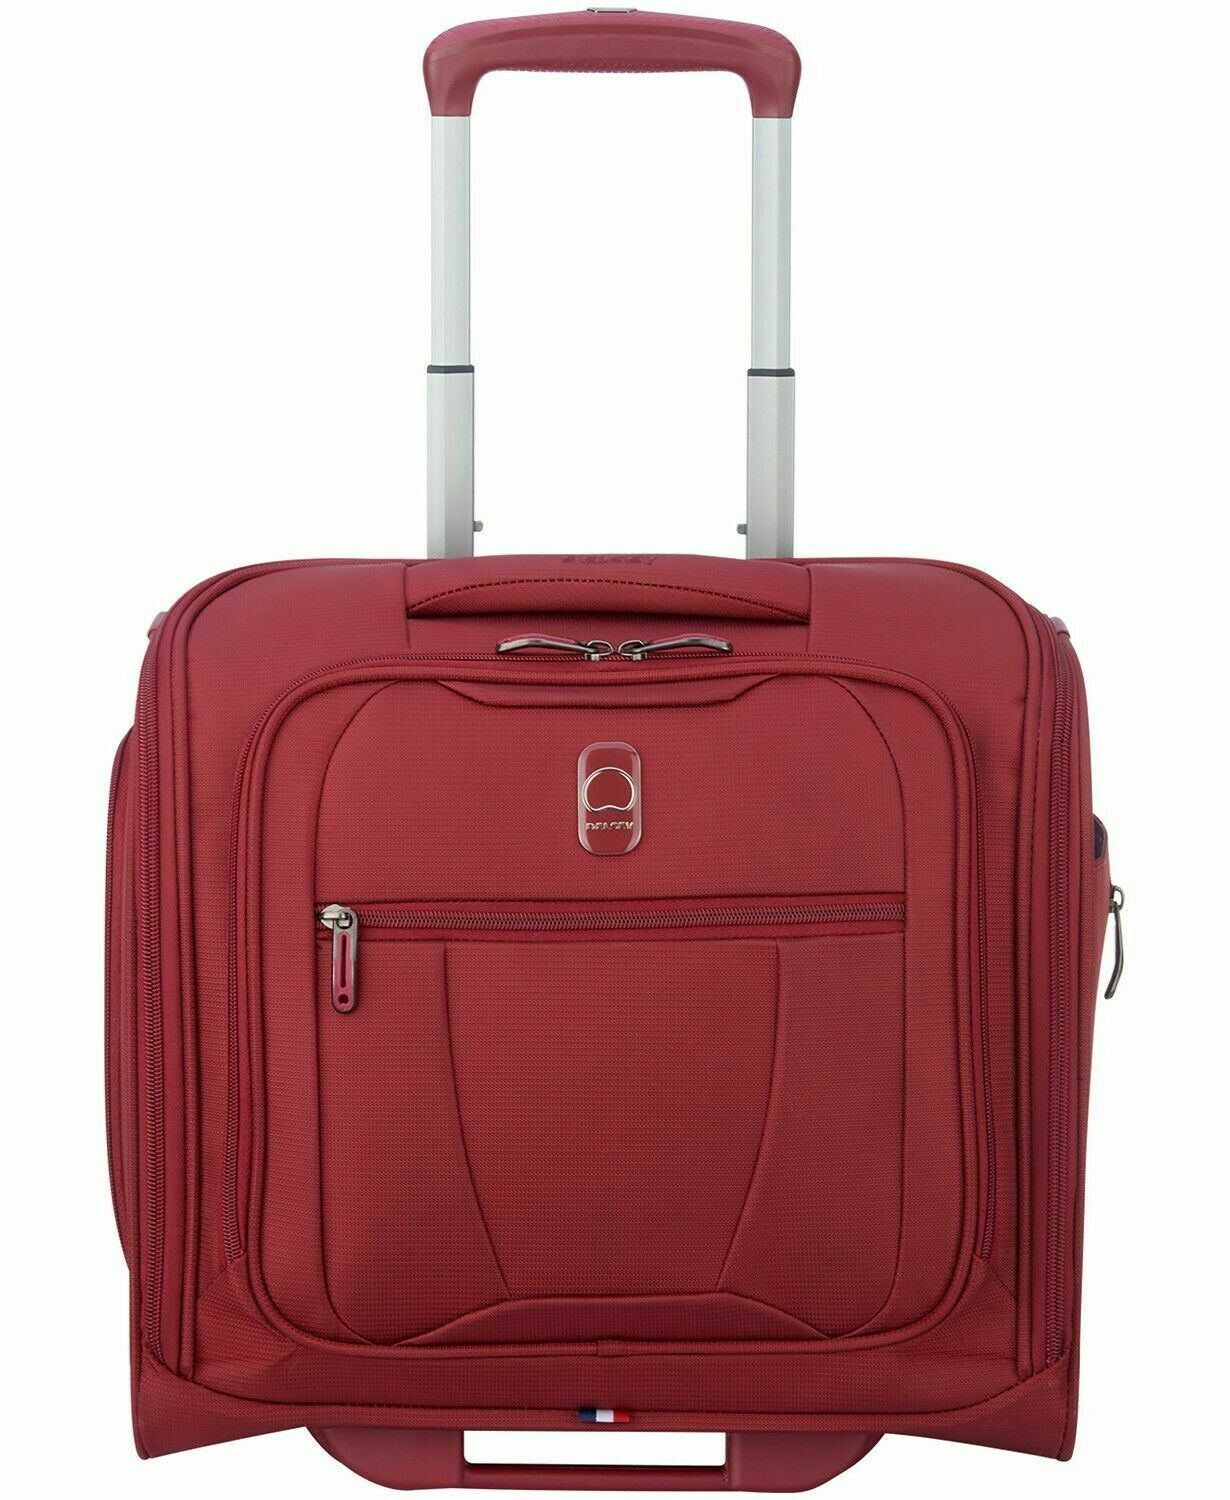 $220 NEW Delsey Helium 360 Carry-On 2 Wheeled Under seat Bag